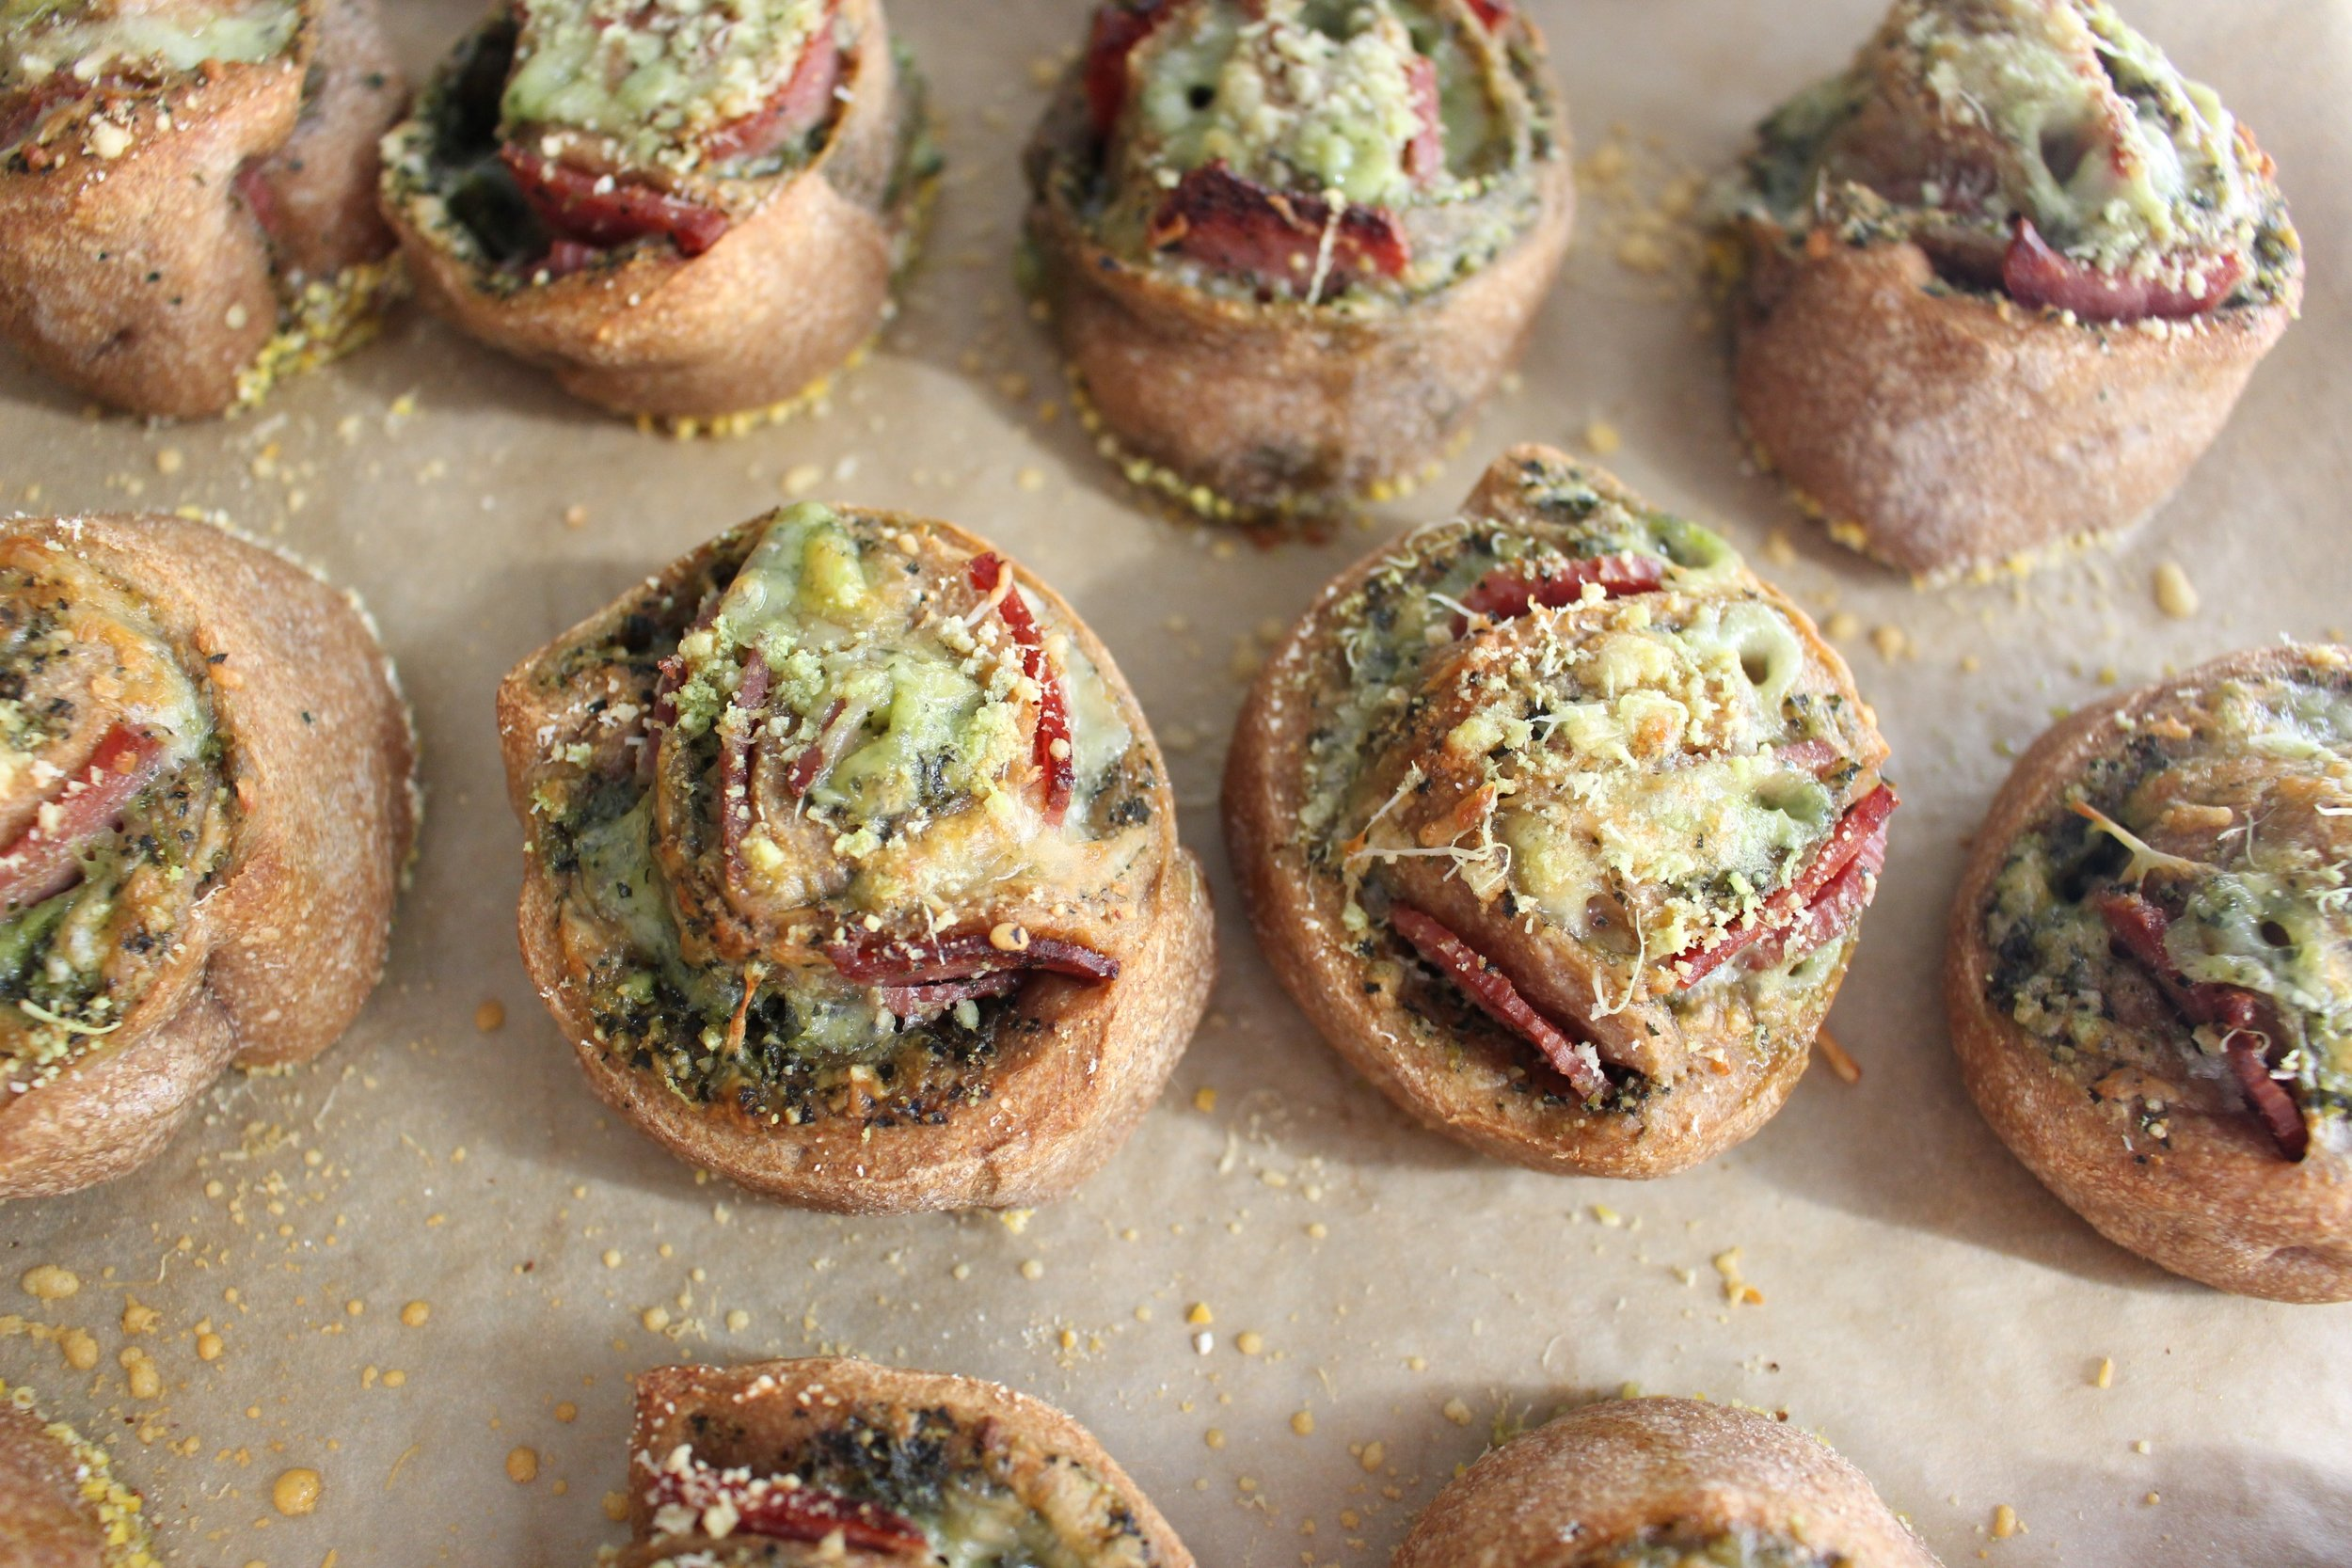 Healthy-ish pizza rolls | Me & The Moose. Whole wheat pizza crust, kale pesto, and turkey salami make these lunchbox friendly pizza rolls (just swap the walnuts in the kale pesto for sunflower or pumpkin seeds or leave them out entirely) a healthier pizza option. #meandthemoose #pizzarolls #healthypizzarecipes #healthypizza #lunchboxideas #lunchboxrecipes #lunch #pizza